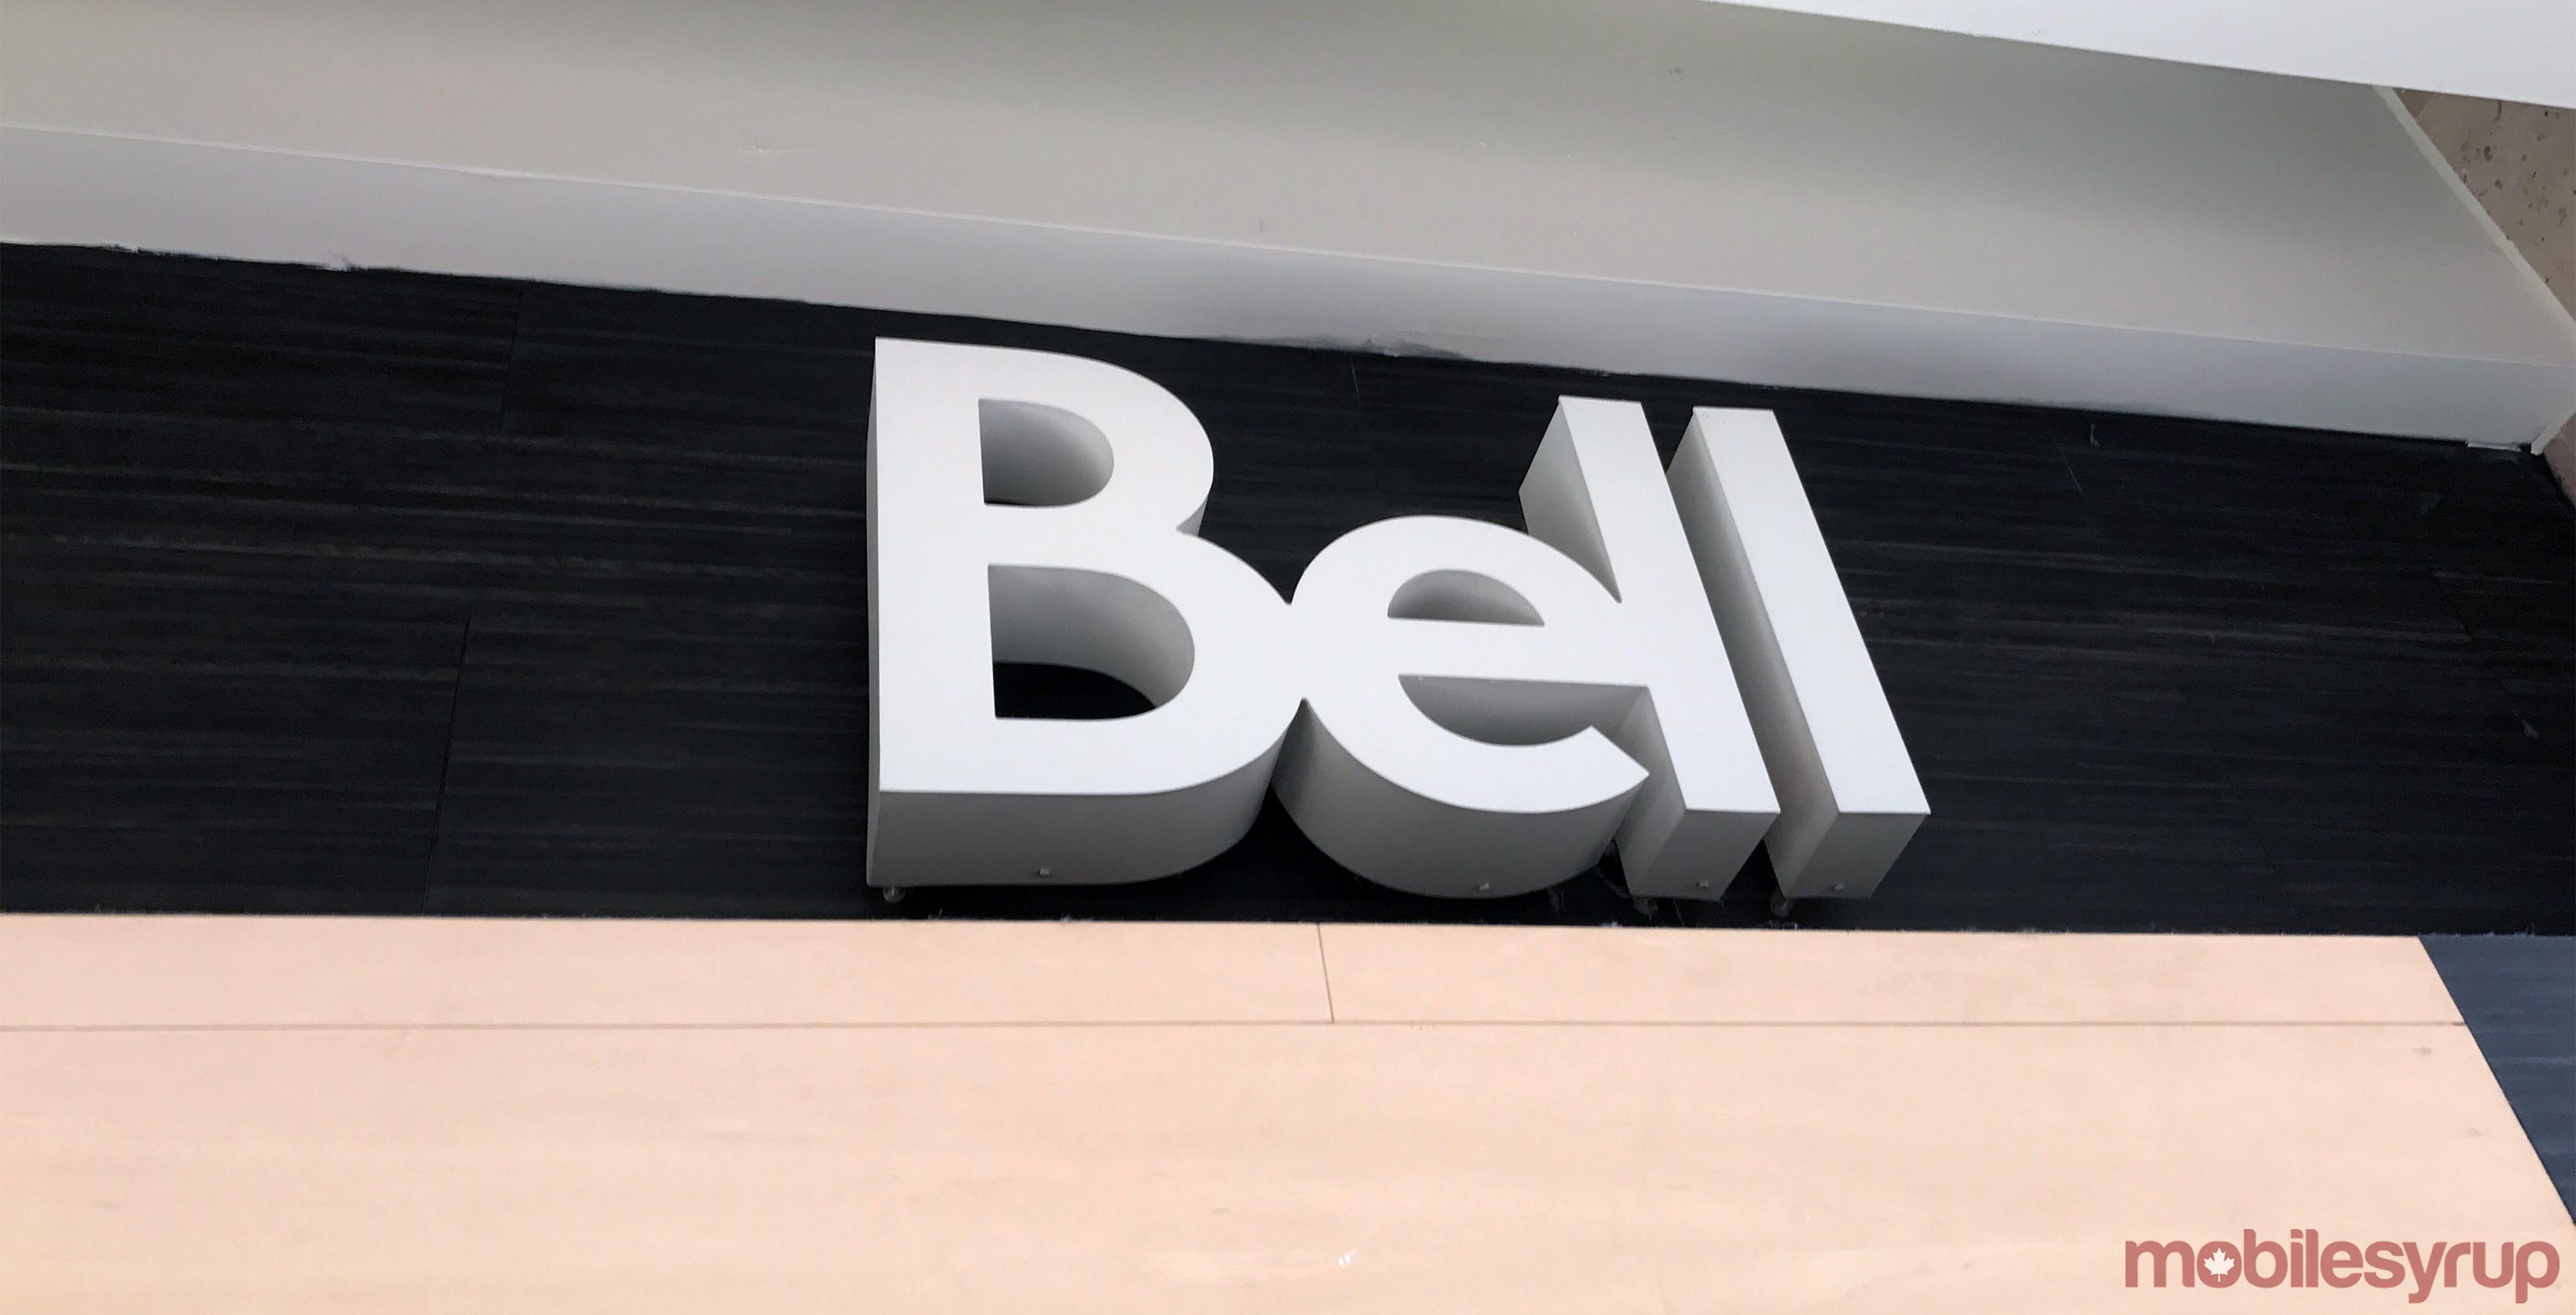 Bell store sign